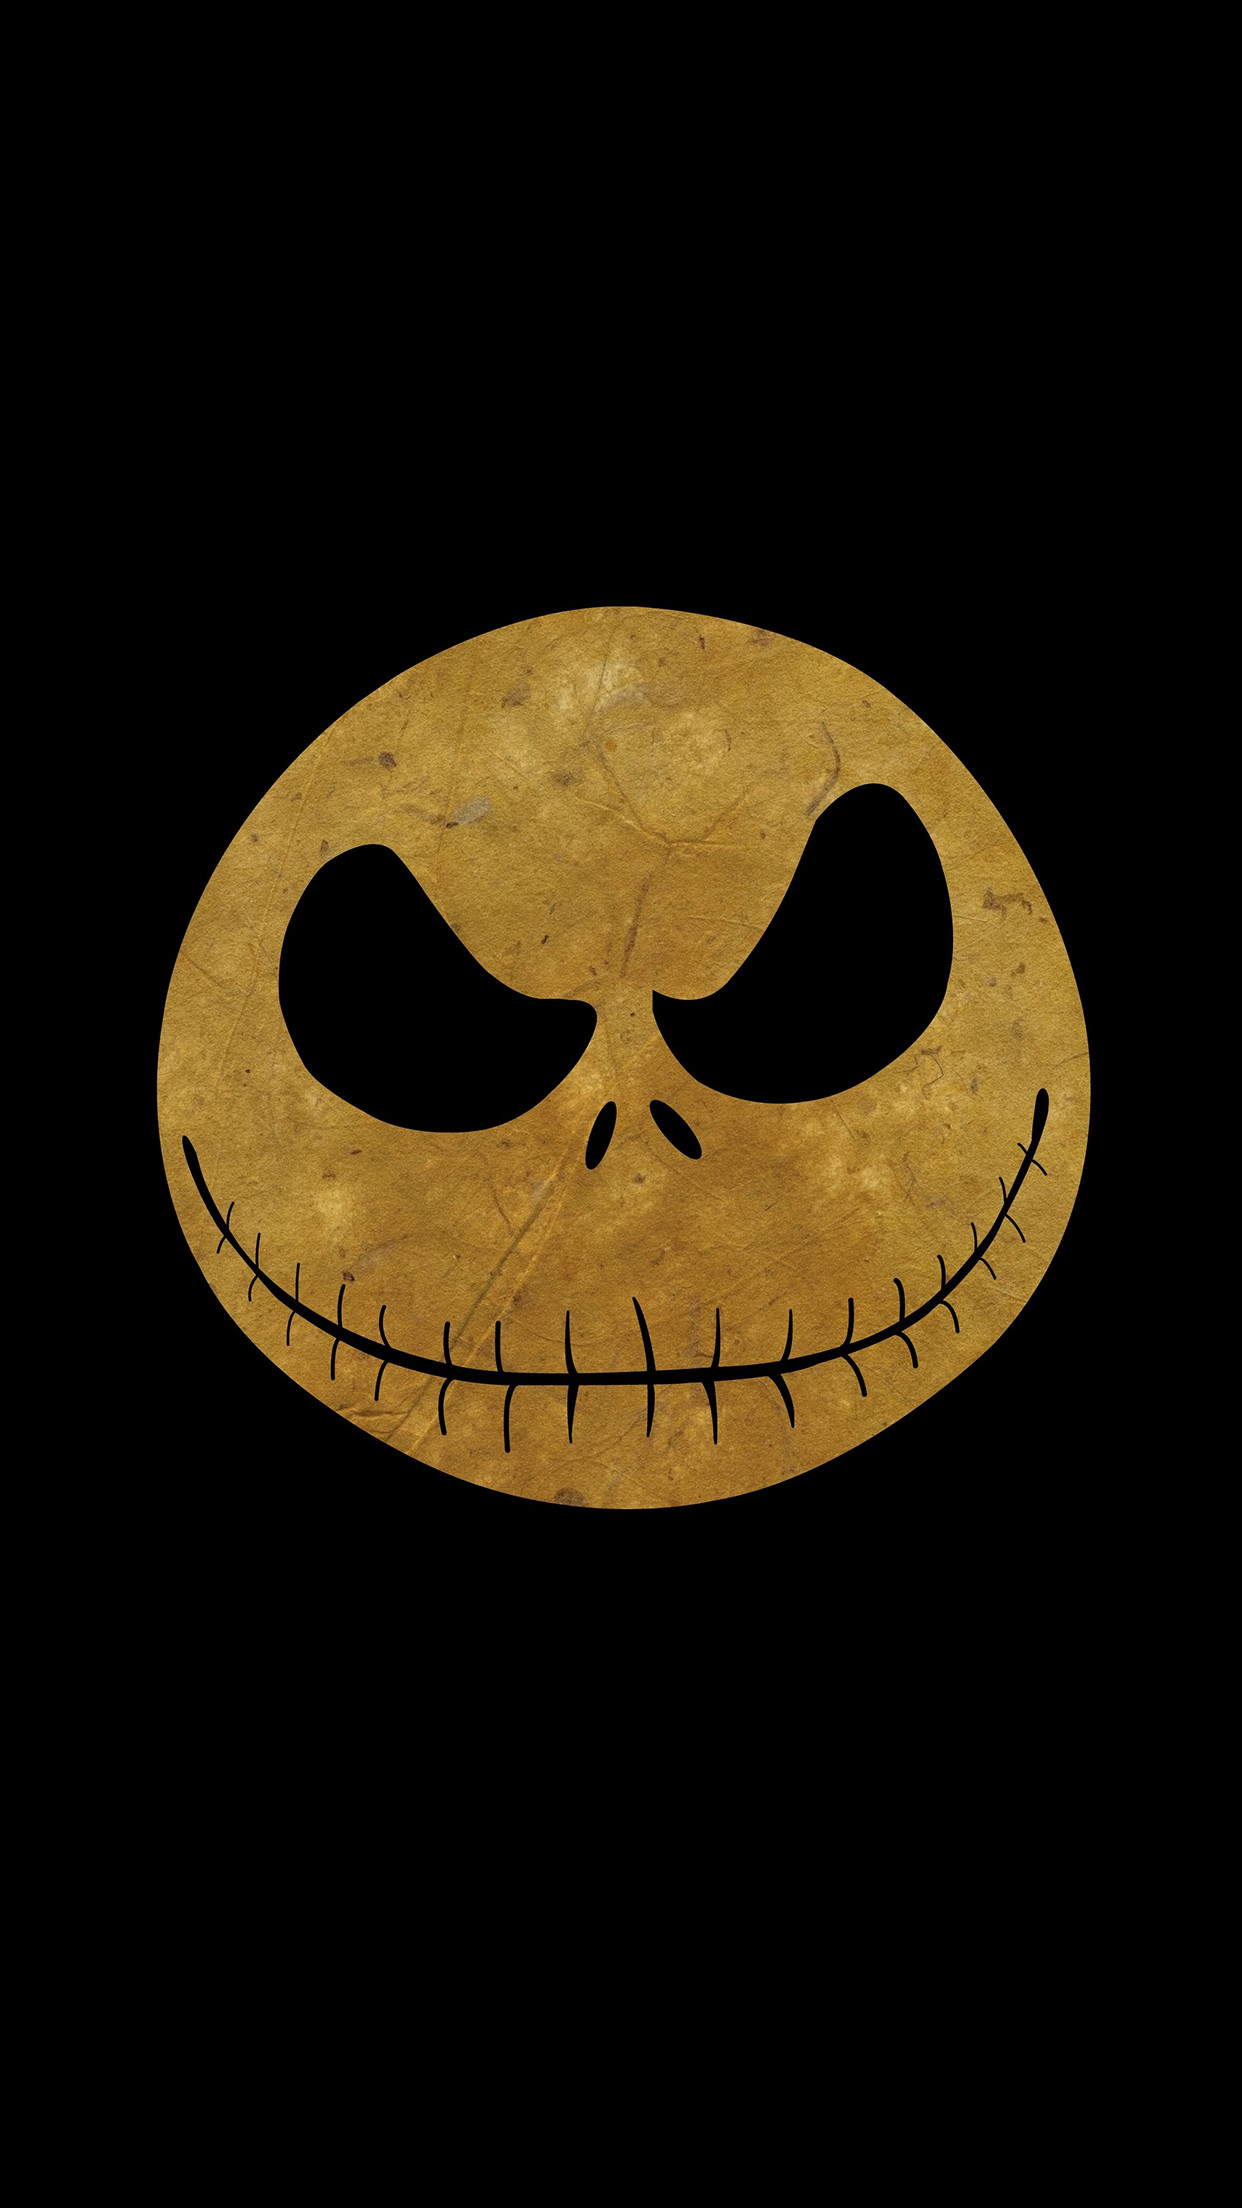 1242x2208 Wallpapers For All IPhone Retina A The Nightmare Before Christmas